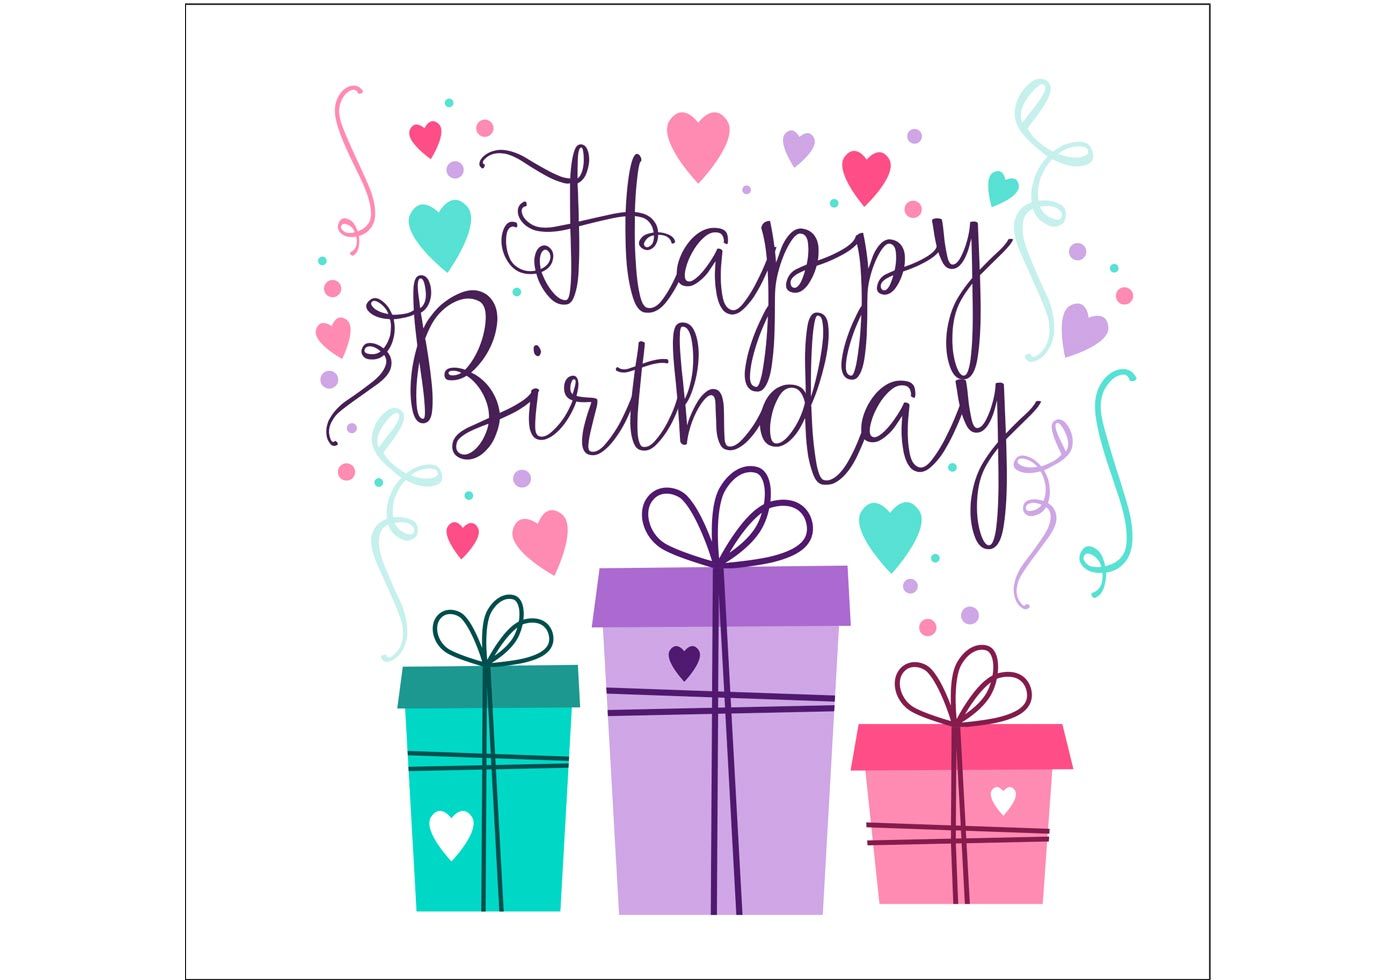 Geburtstagskarte Gestalten Birthday Card Design - Download Free Vector Art, Stock